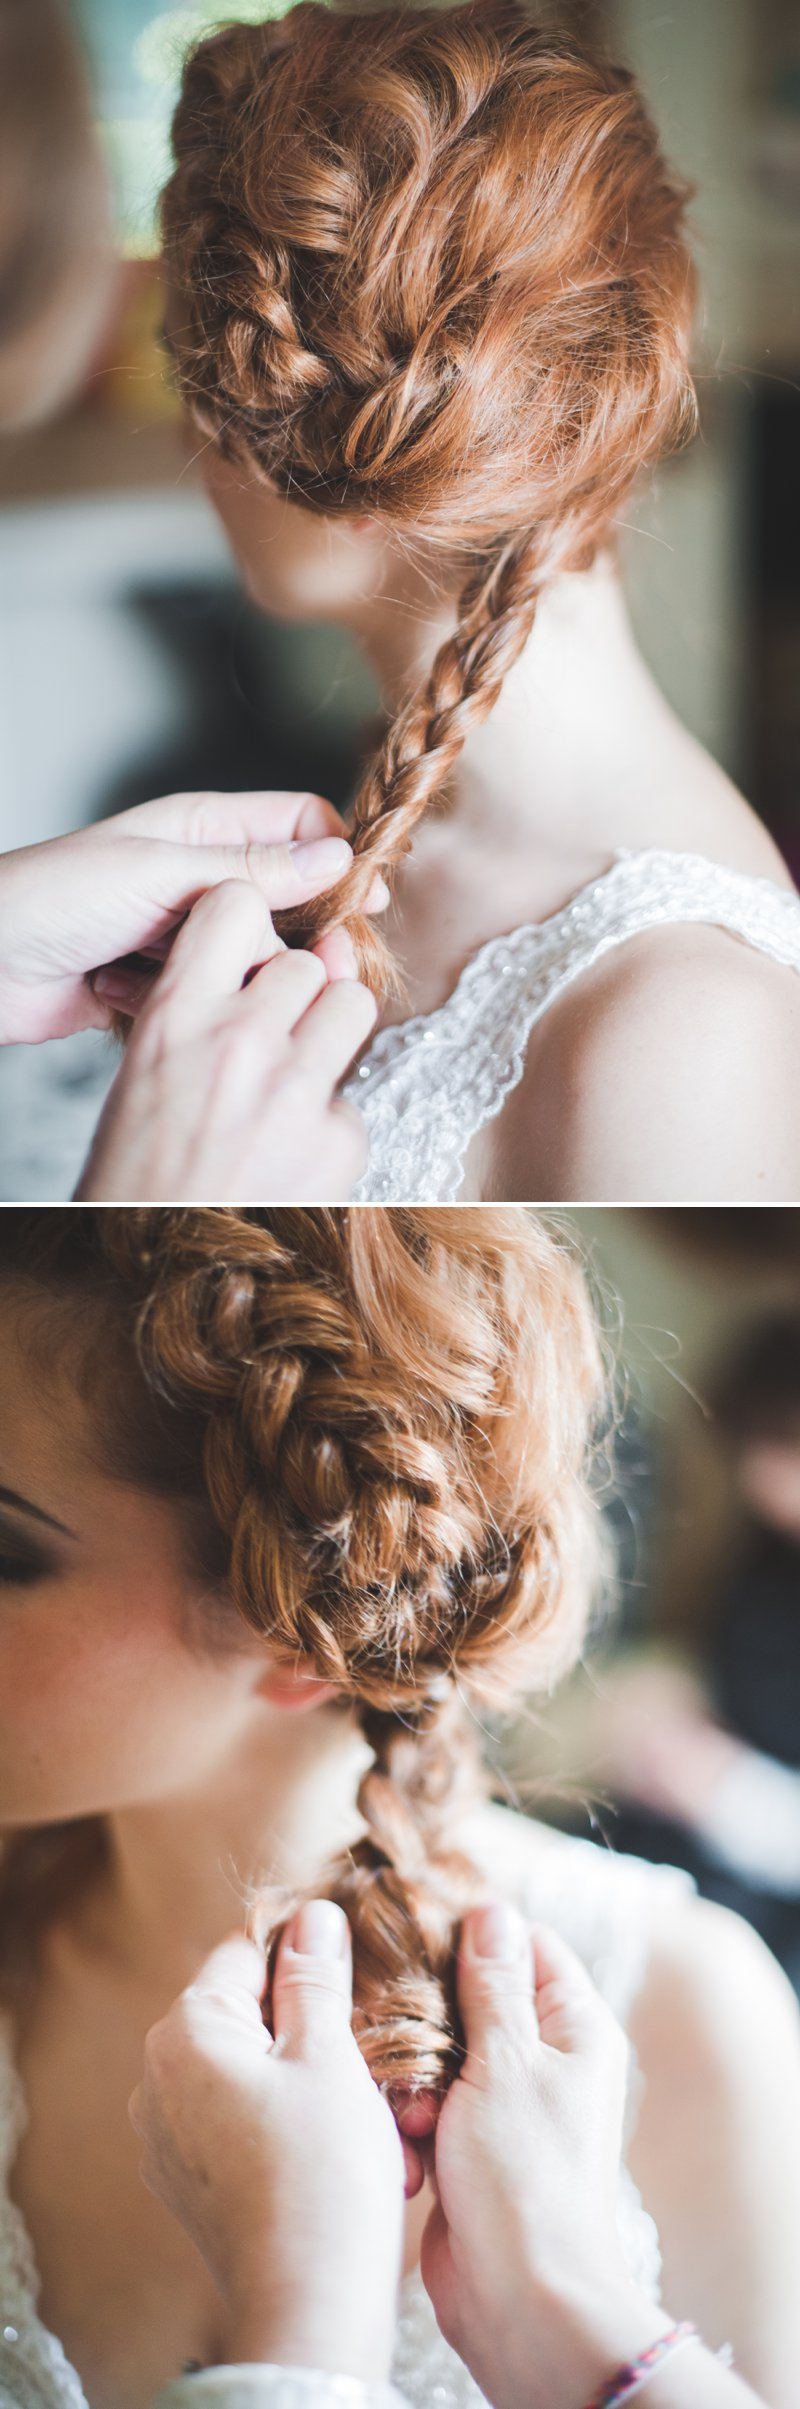 A Bridal Hair Tutorial Showing Brides How To Create Perfect Tousled Sexy Waves And A Boho